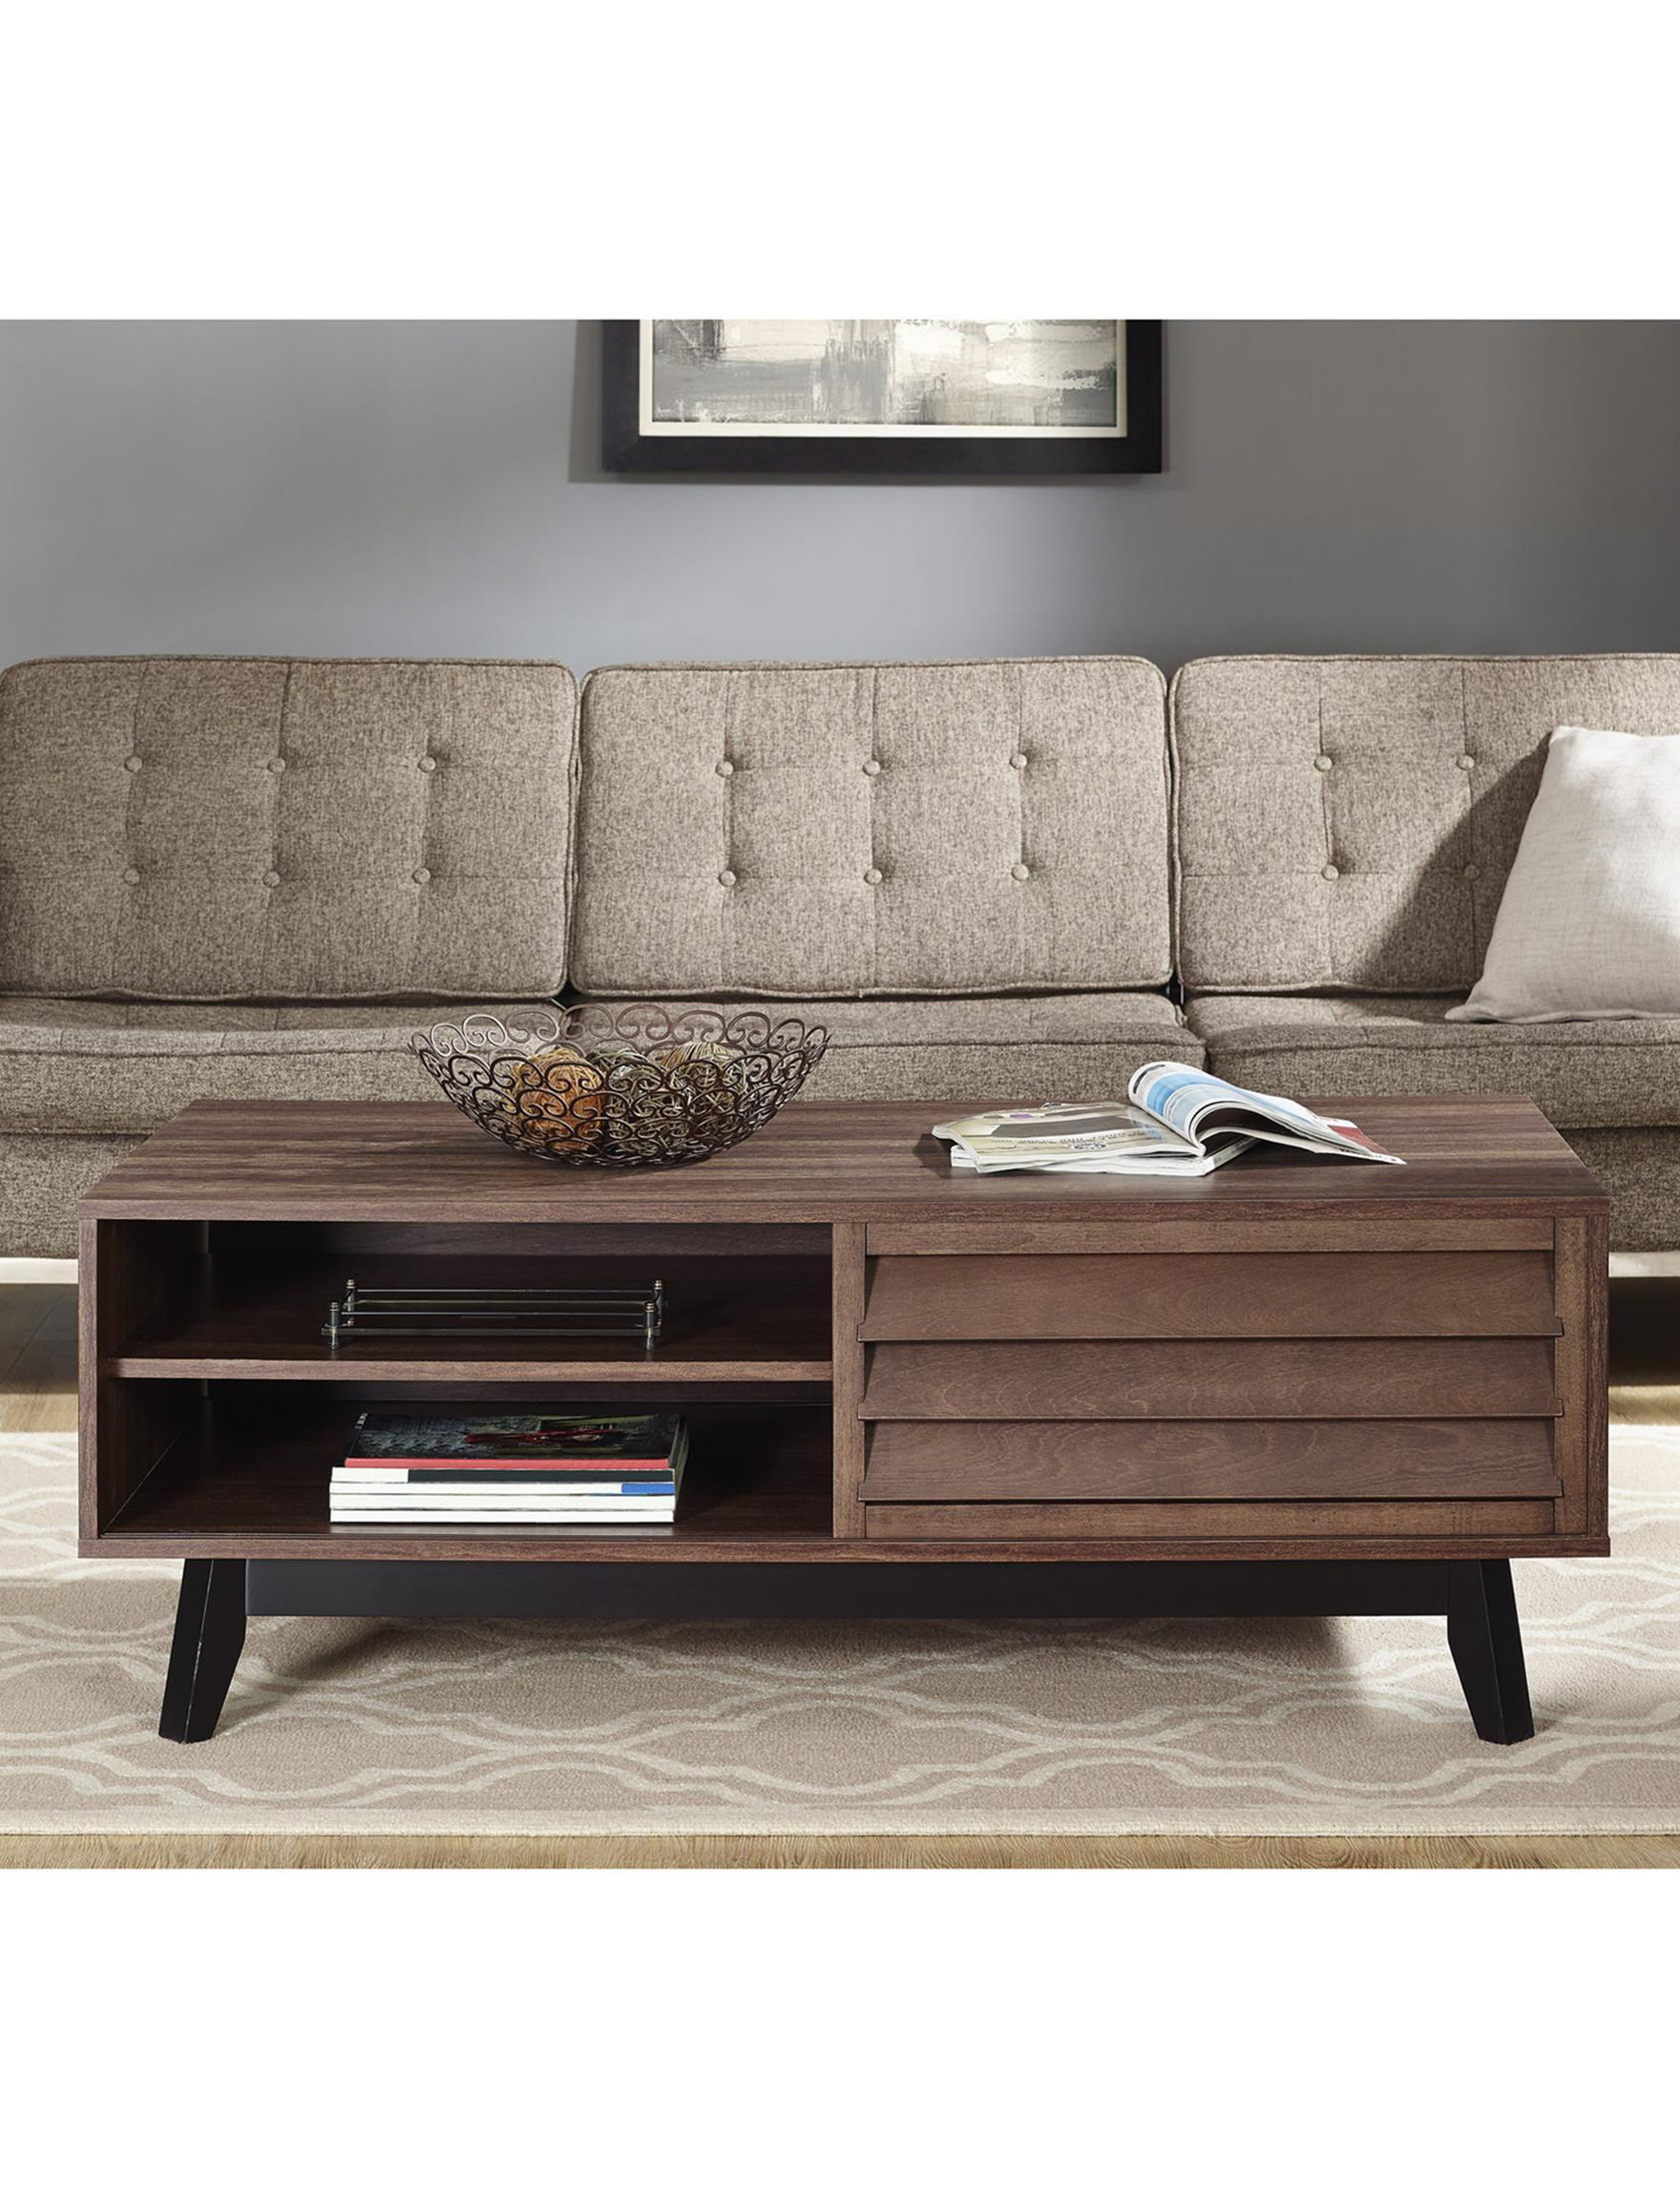 Ameriwood Dark Brown Accent & End Tables Coffee Tables Living Room Furniture